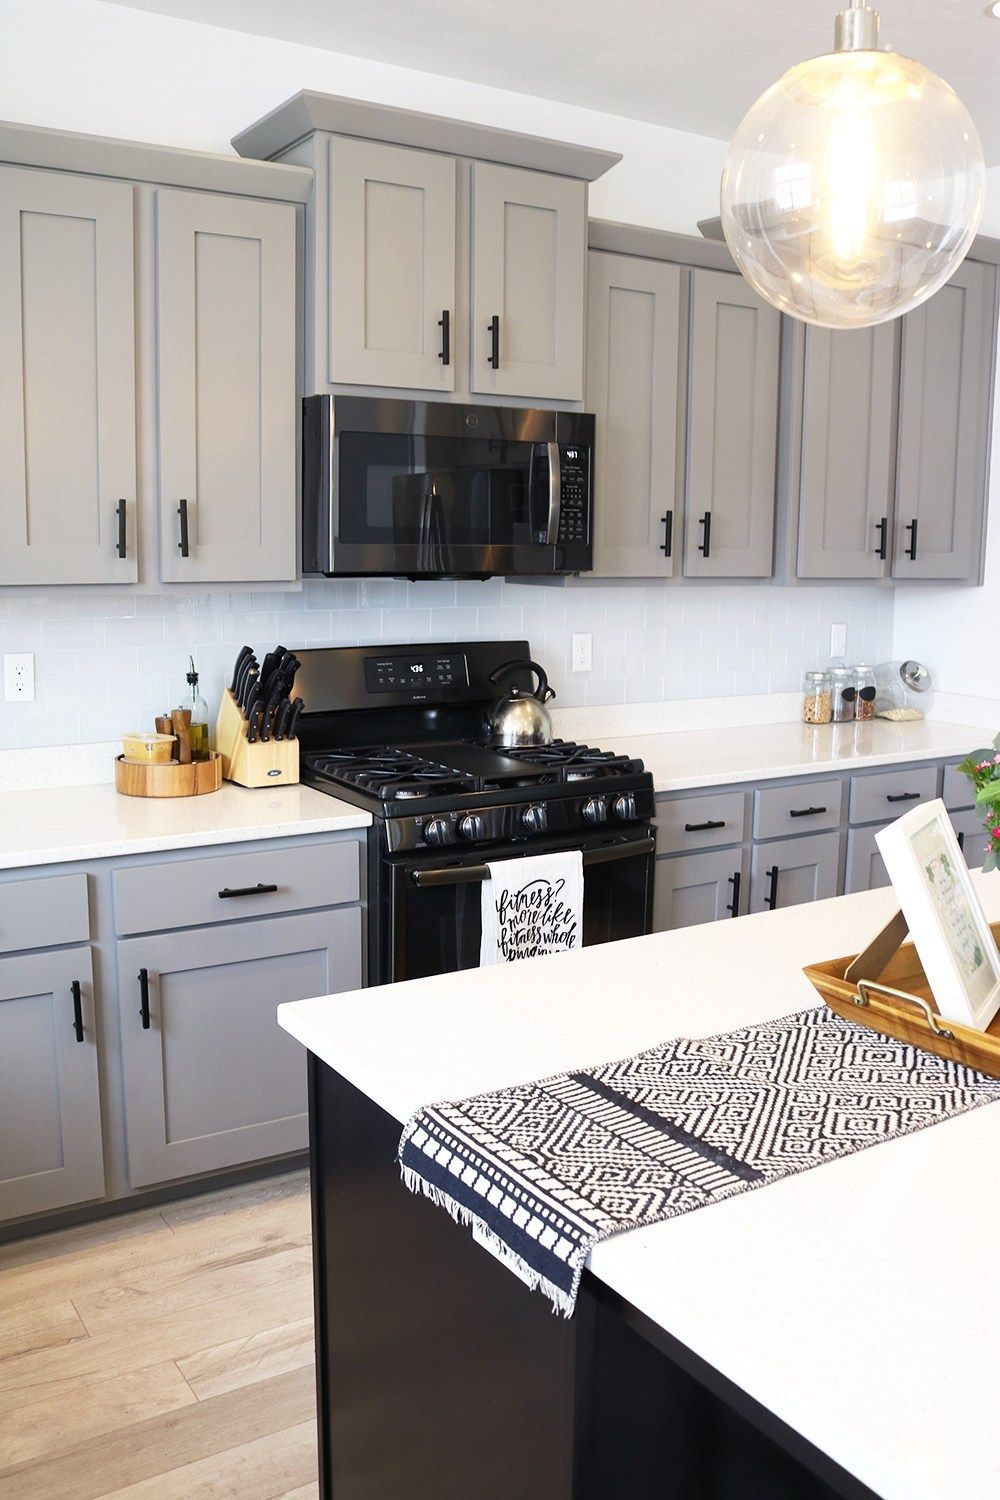 Black Stainless Steel Appliances What You Need To Know Seeking Alexi D Kitchen Cabinets With Black Appliances Black Appliances Kitchen Kitchen Remodel Small